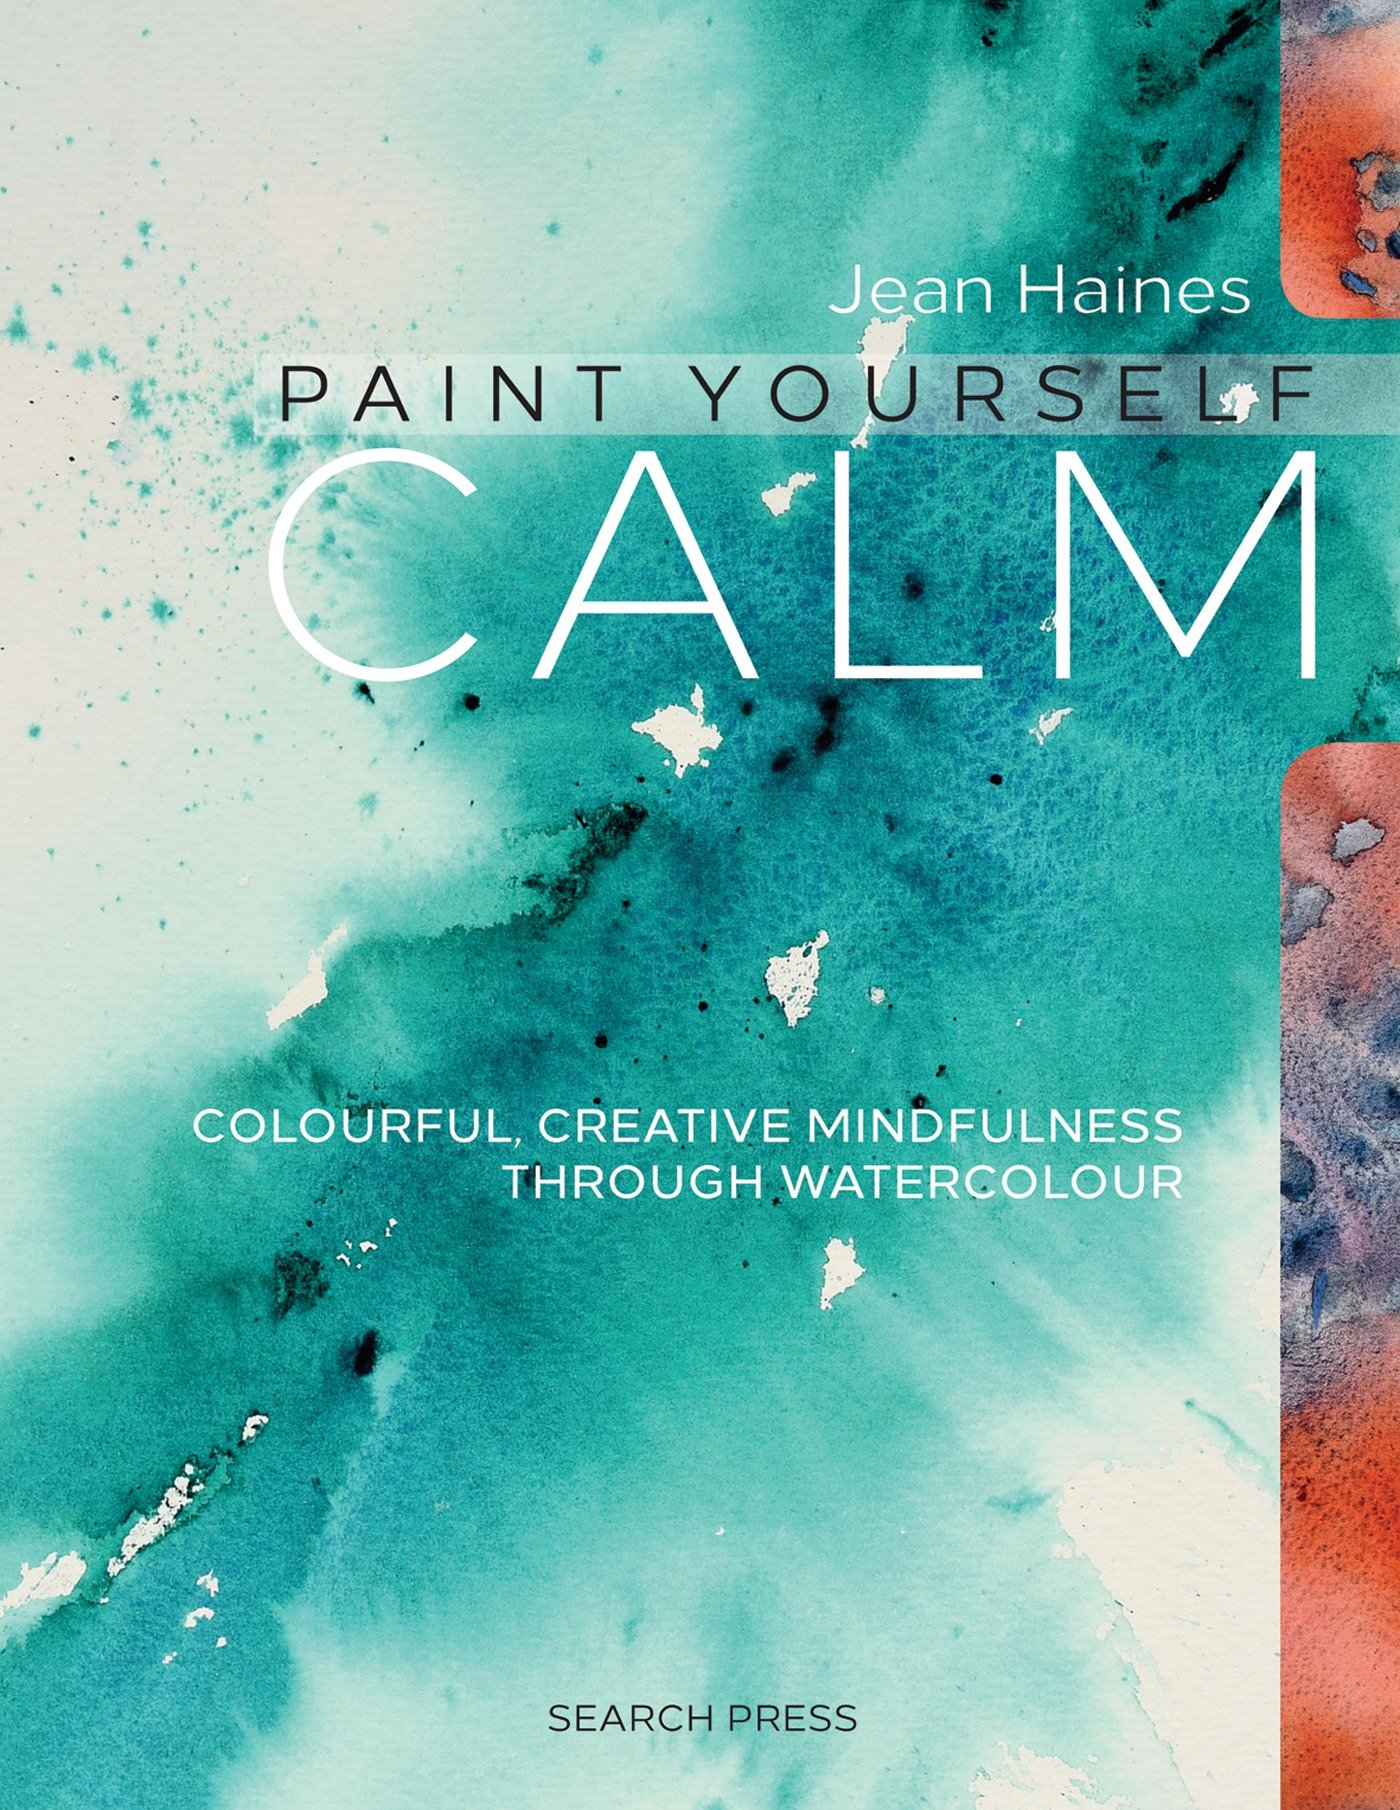 Watercolor book covers - Amazon Com Paint Yourself Calm Colourful Creative Mindfulness Through Watercolour 9781782212829 Jean Haines Books